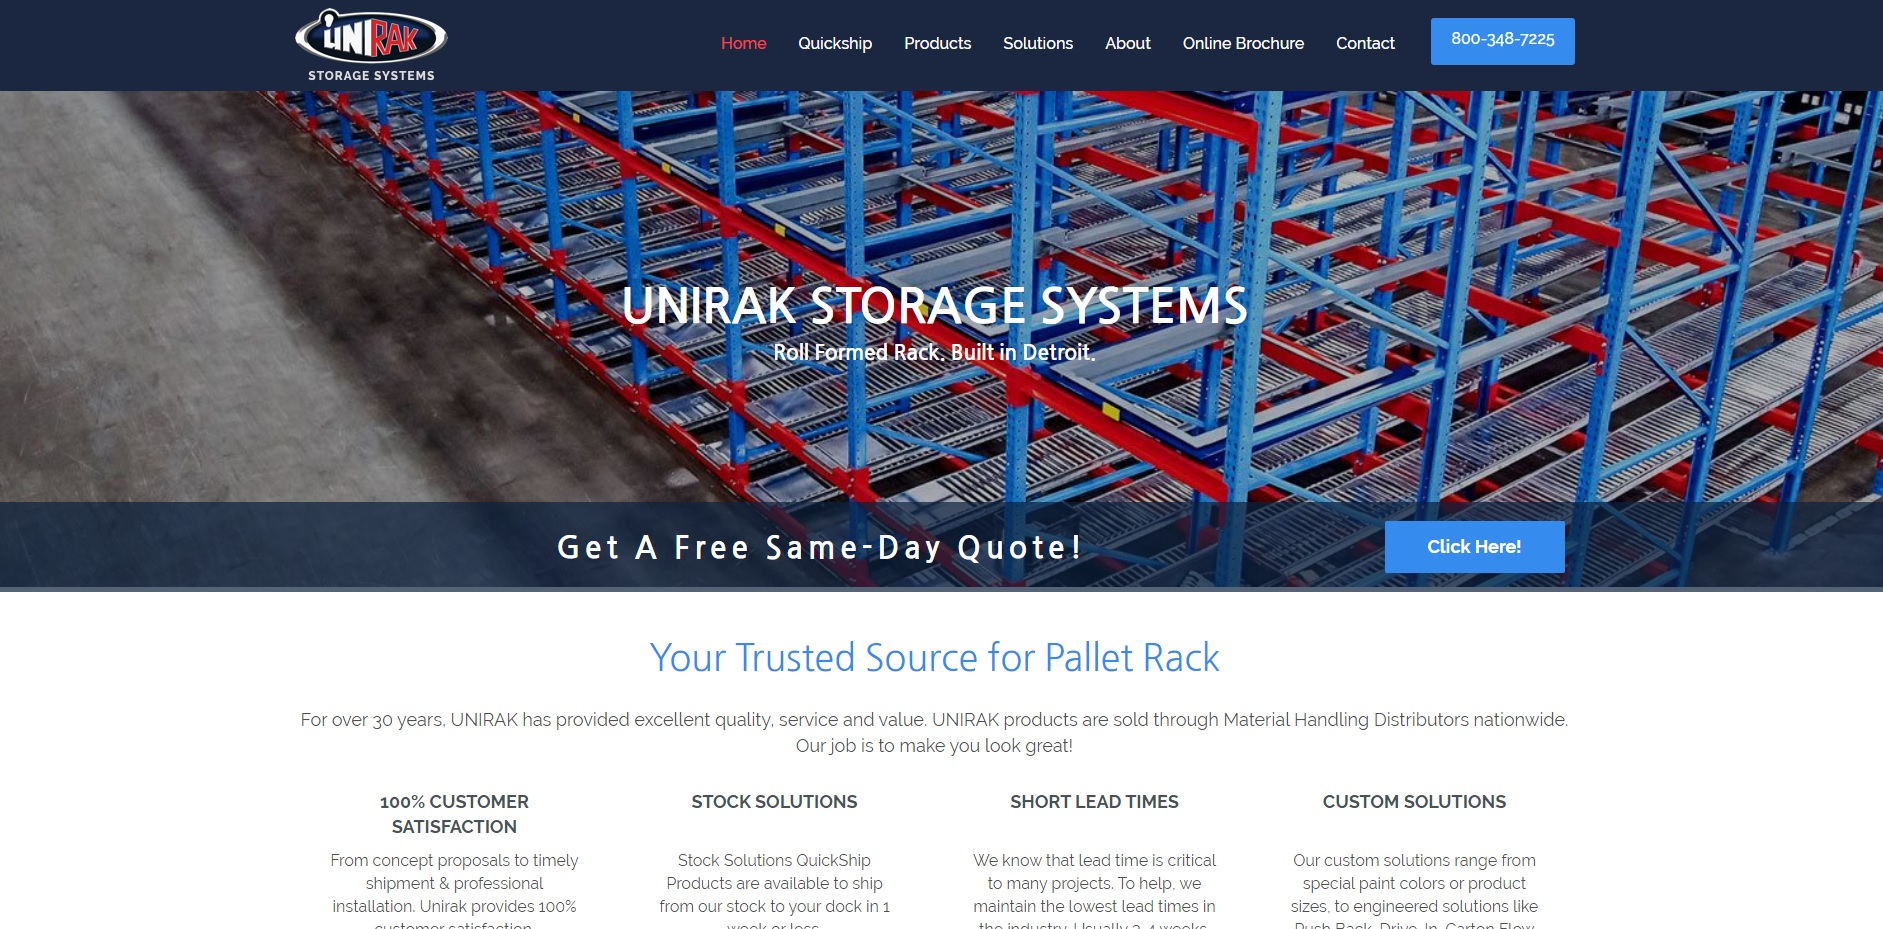 UNIRAK Storage Systems